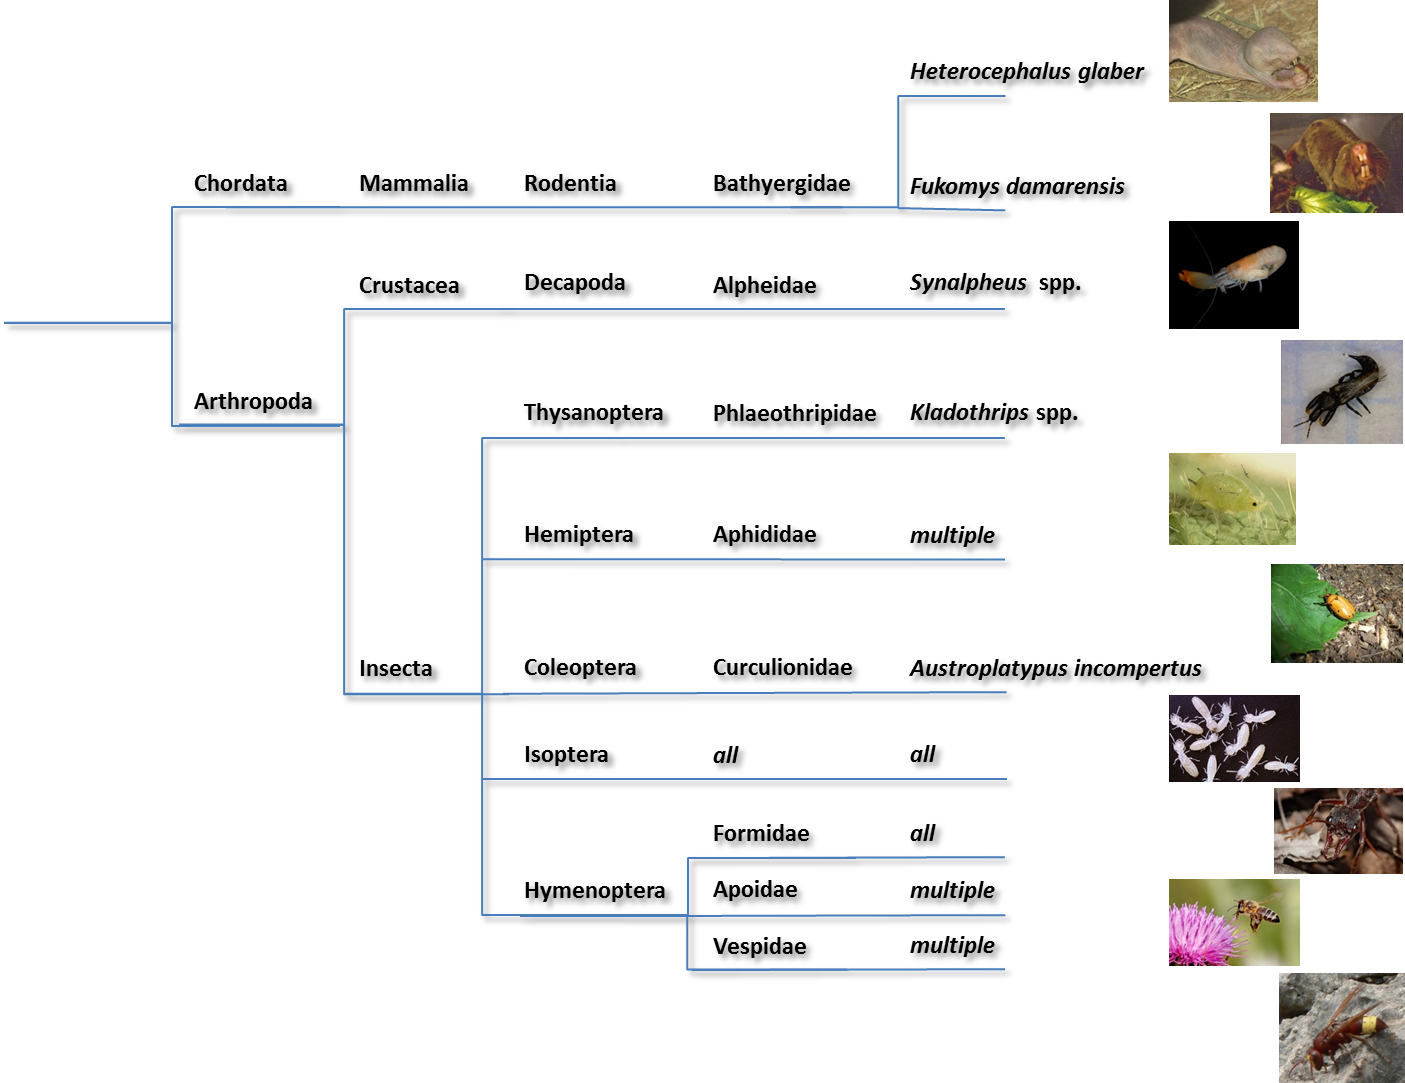 Filediagram Of Eusocial Speciespng - Wikimedia Commons-3043